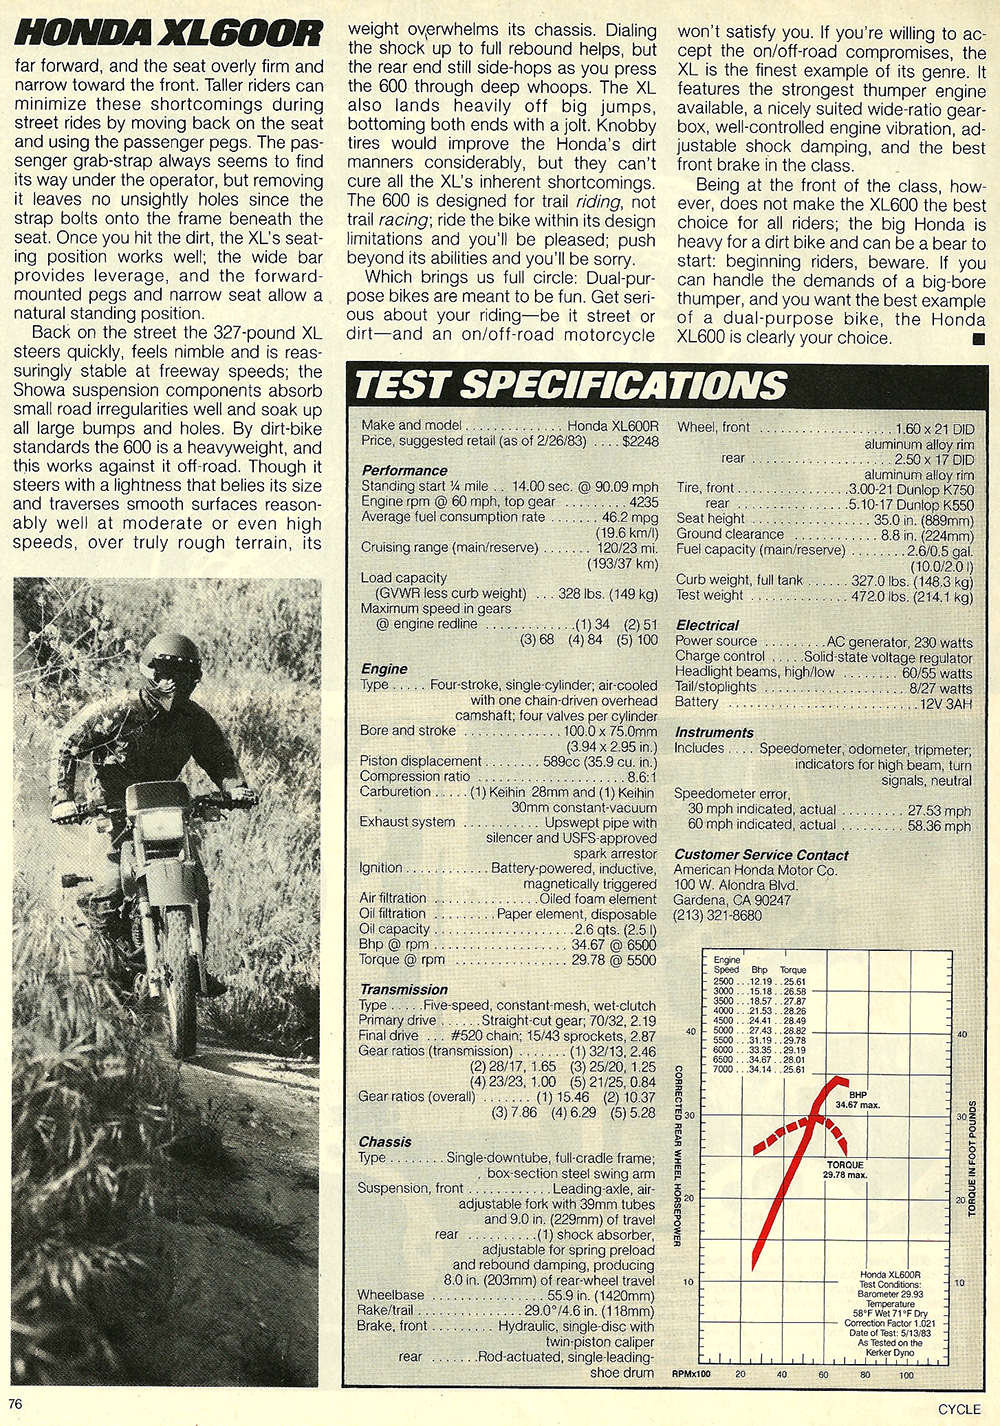 1983 Honda XL600R road test 7.jpg